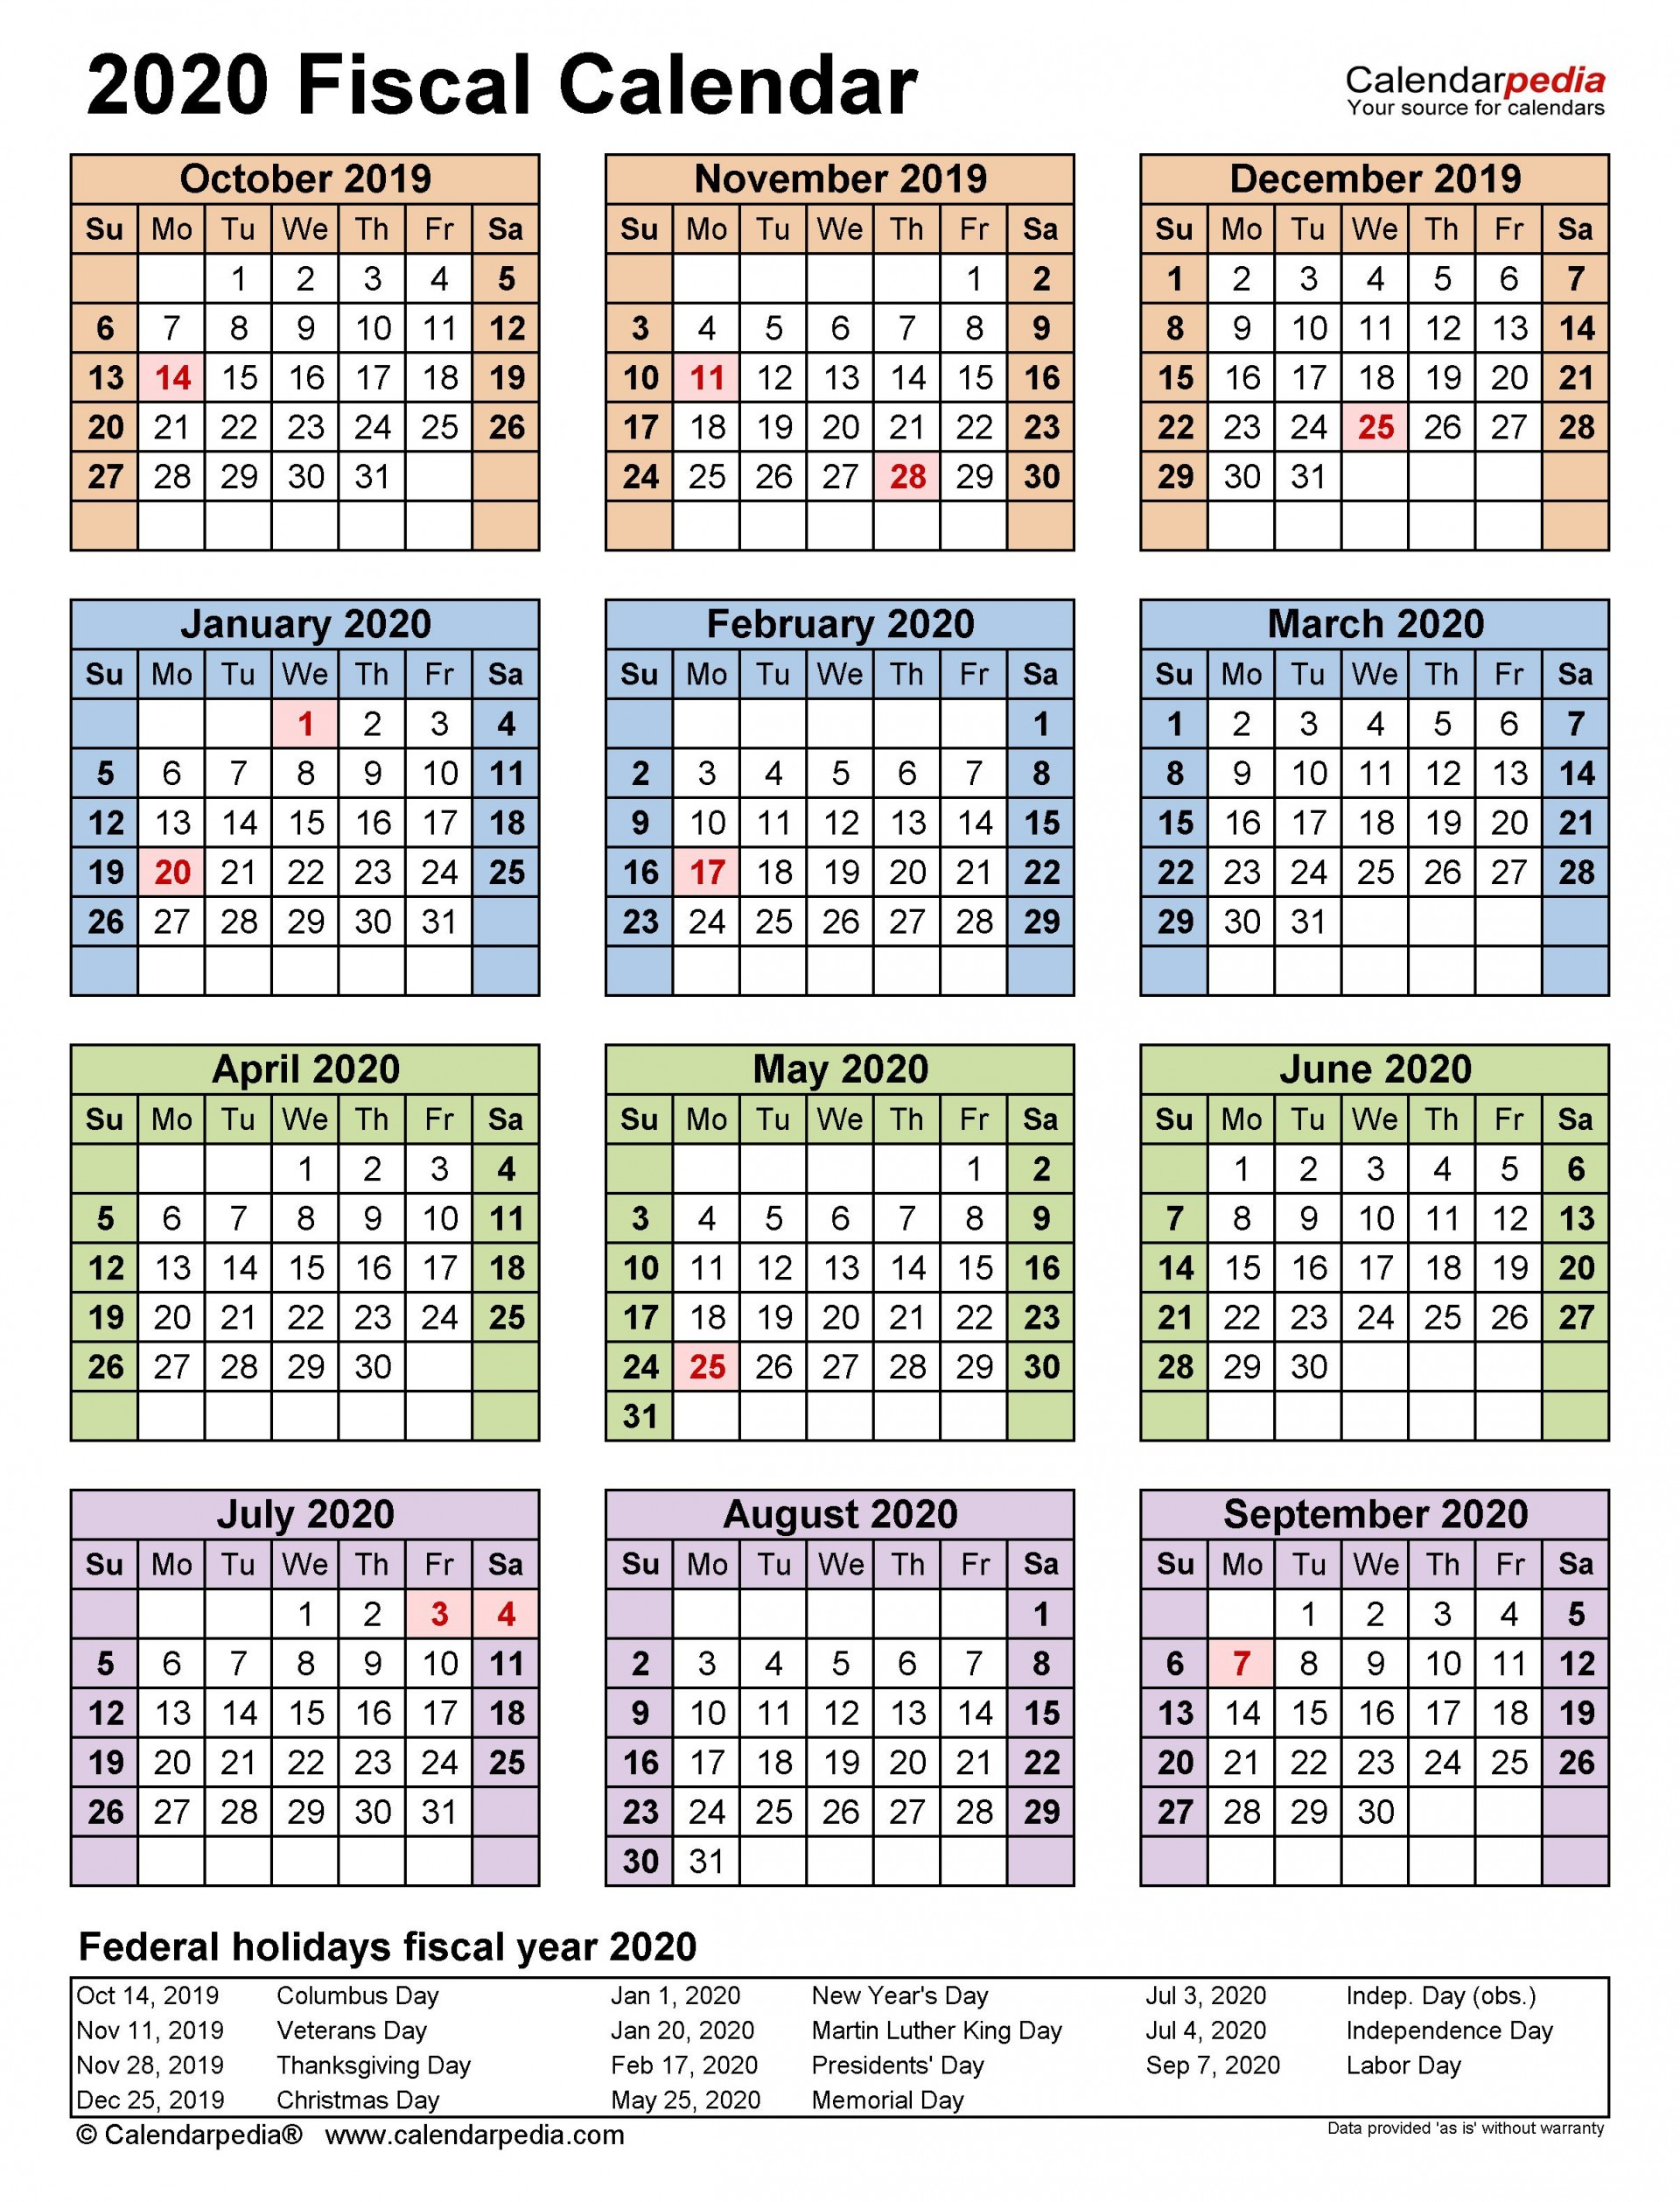 005 Magnificent Payroll Calendar Template 2020 Image  Biweekly Schedule Excel Free1920